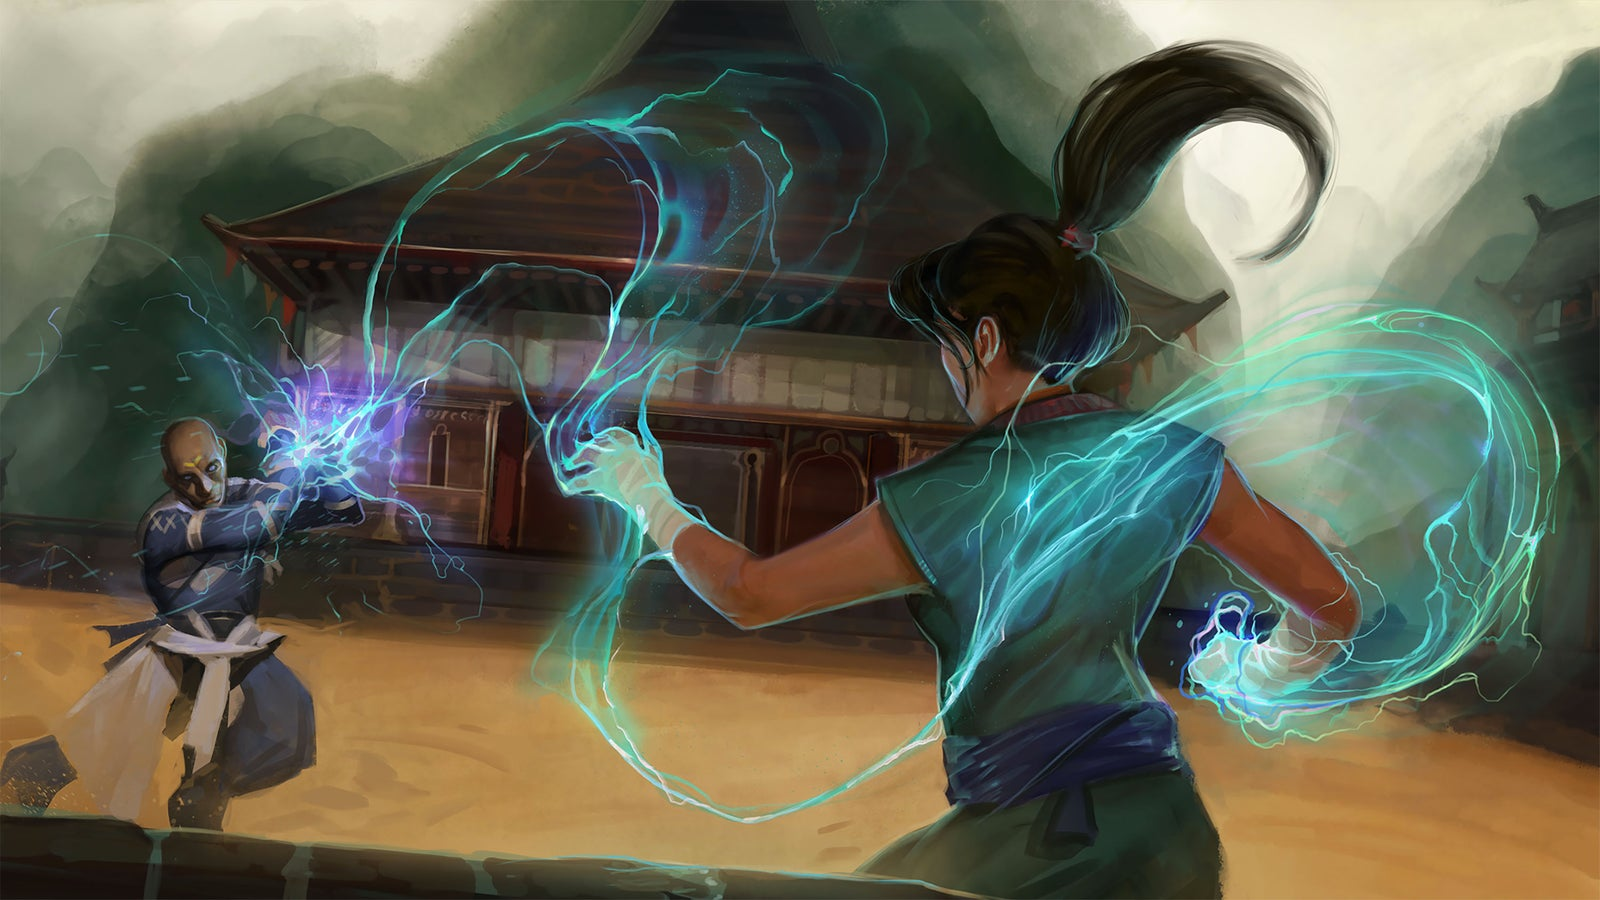 Two martial artists fight in the center of a wide arena. A spiraling bolt of lightning arcs from one's outstretched hand and is reflected off the other's crossed bracers.